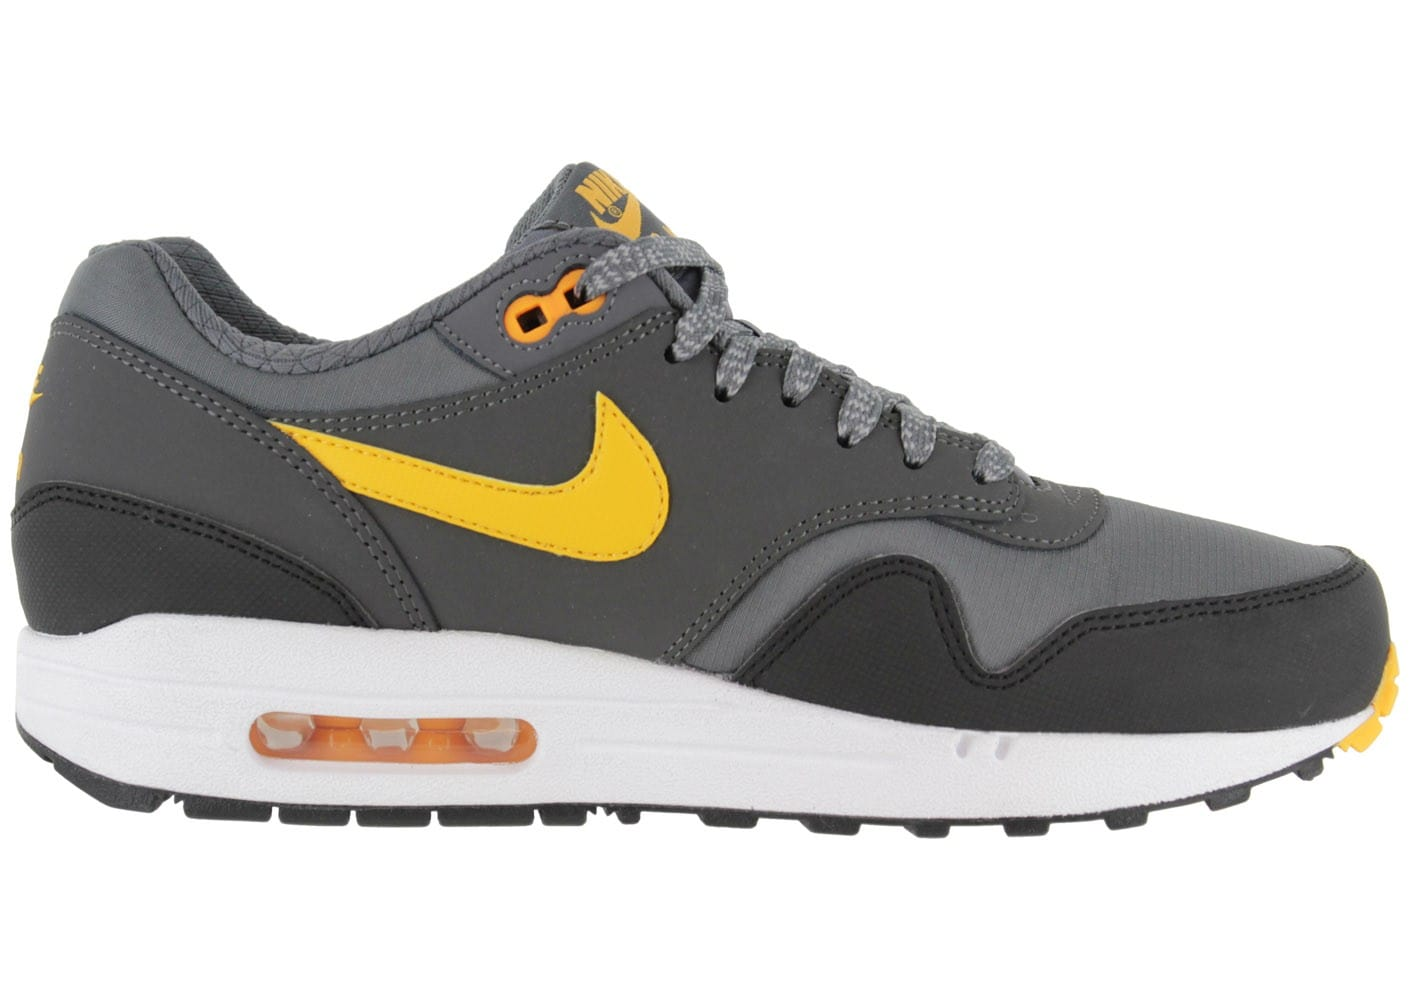 nike air max 1 premium grise chaussures homme chausport. Black Bedroom Furniture Sets. Home Design Ideas